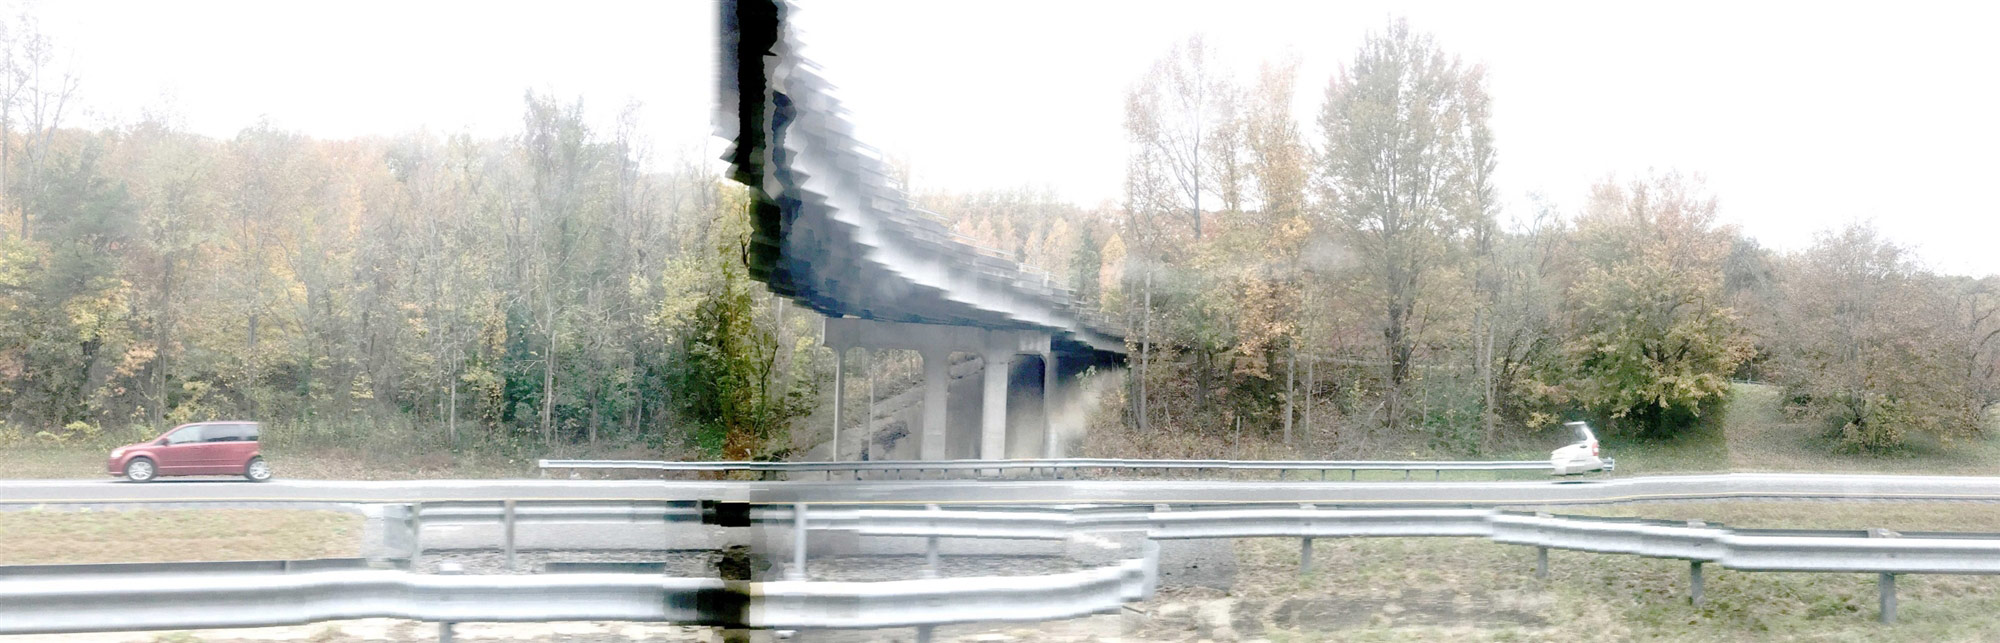 © Nathan Raymond Goddard, MemoryPanoScape Automobile Asheville..., Photography 8 x 25, The Chelsea International Photography Competition